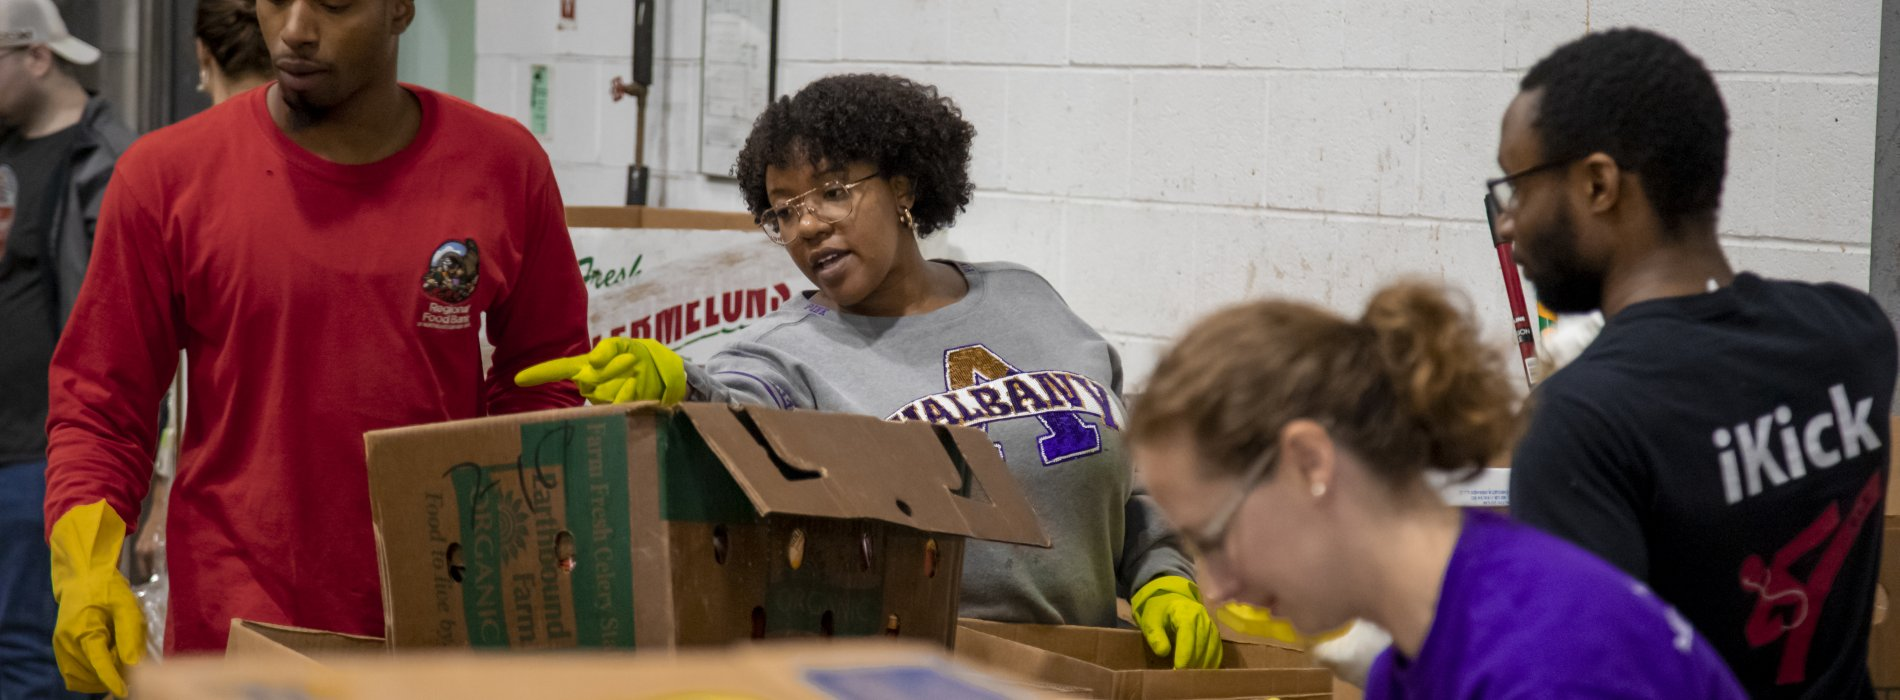 A student at the food bank points at a box of food that needs to be sorted. She is standing behind several boxes of packaged food.